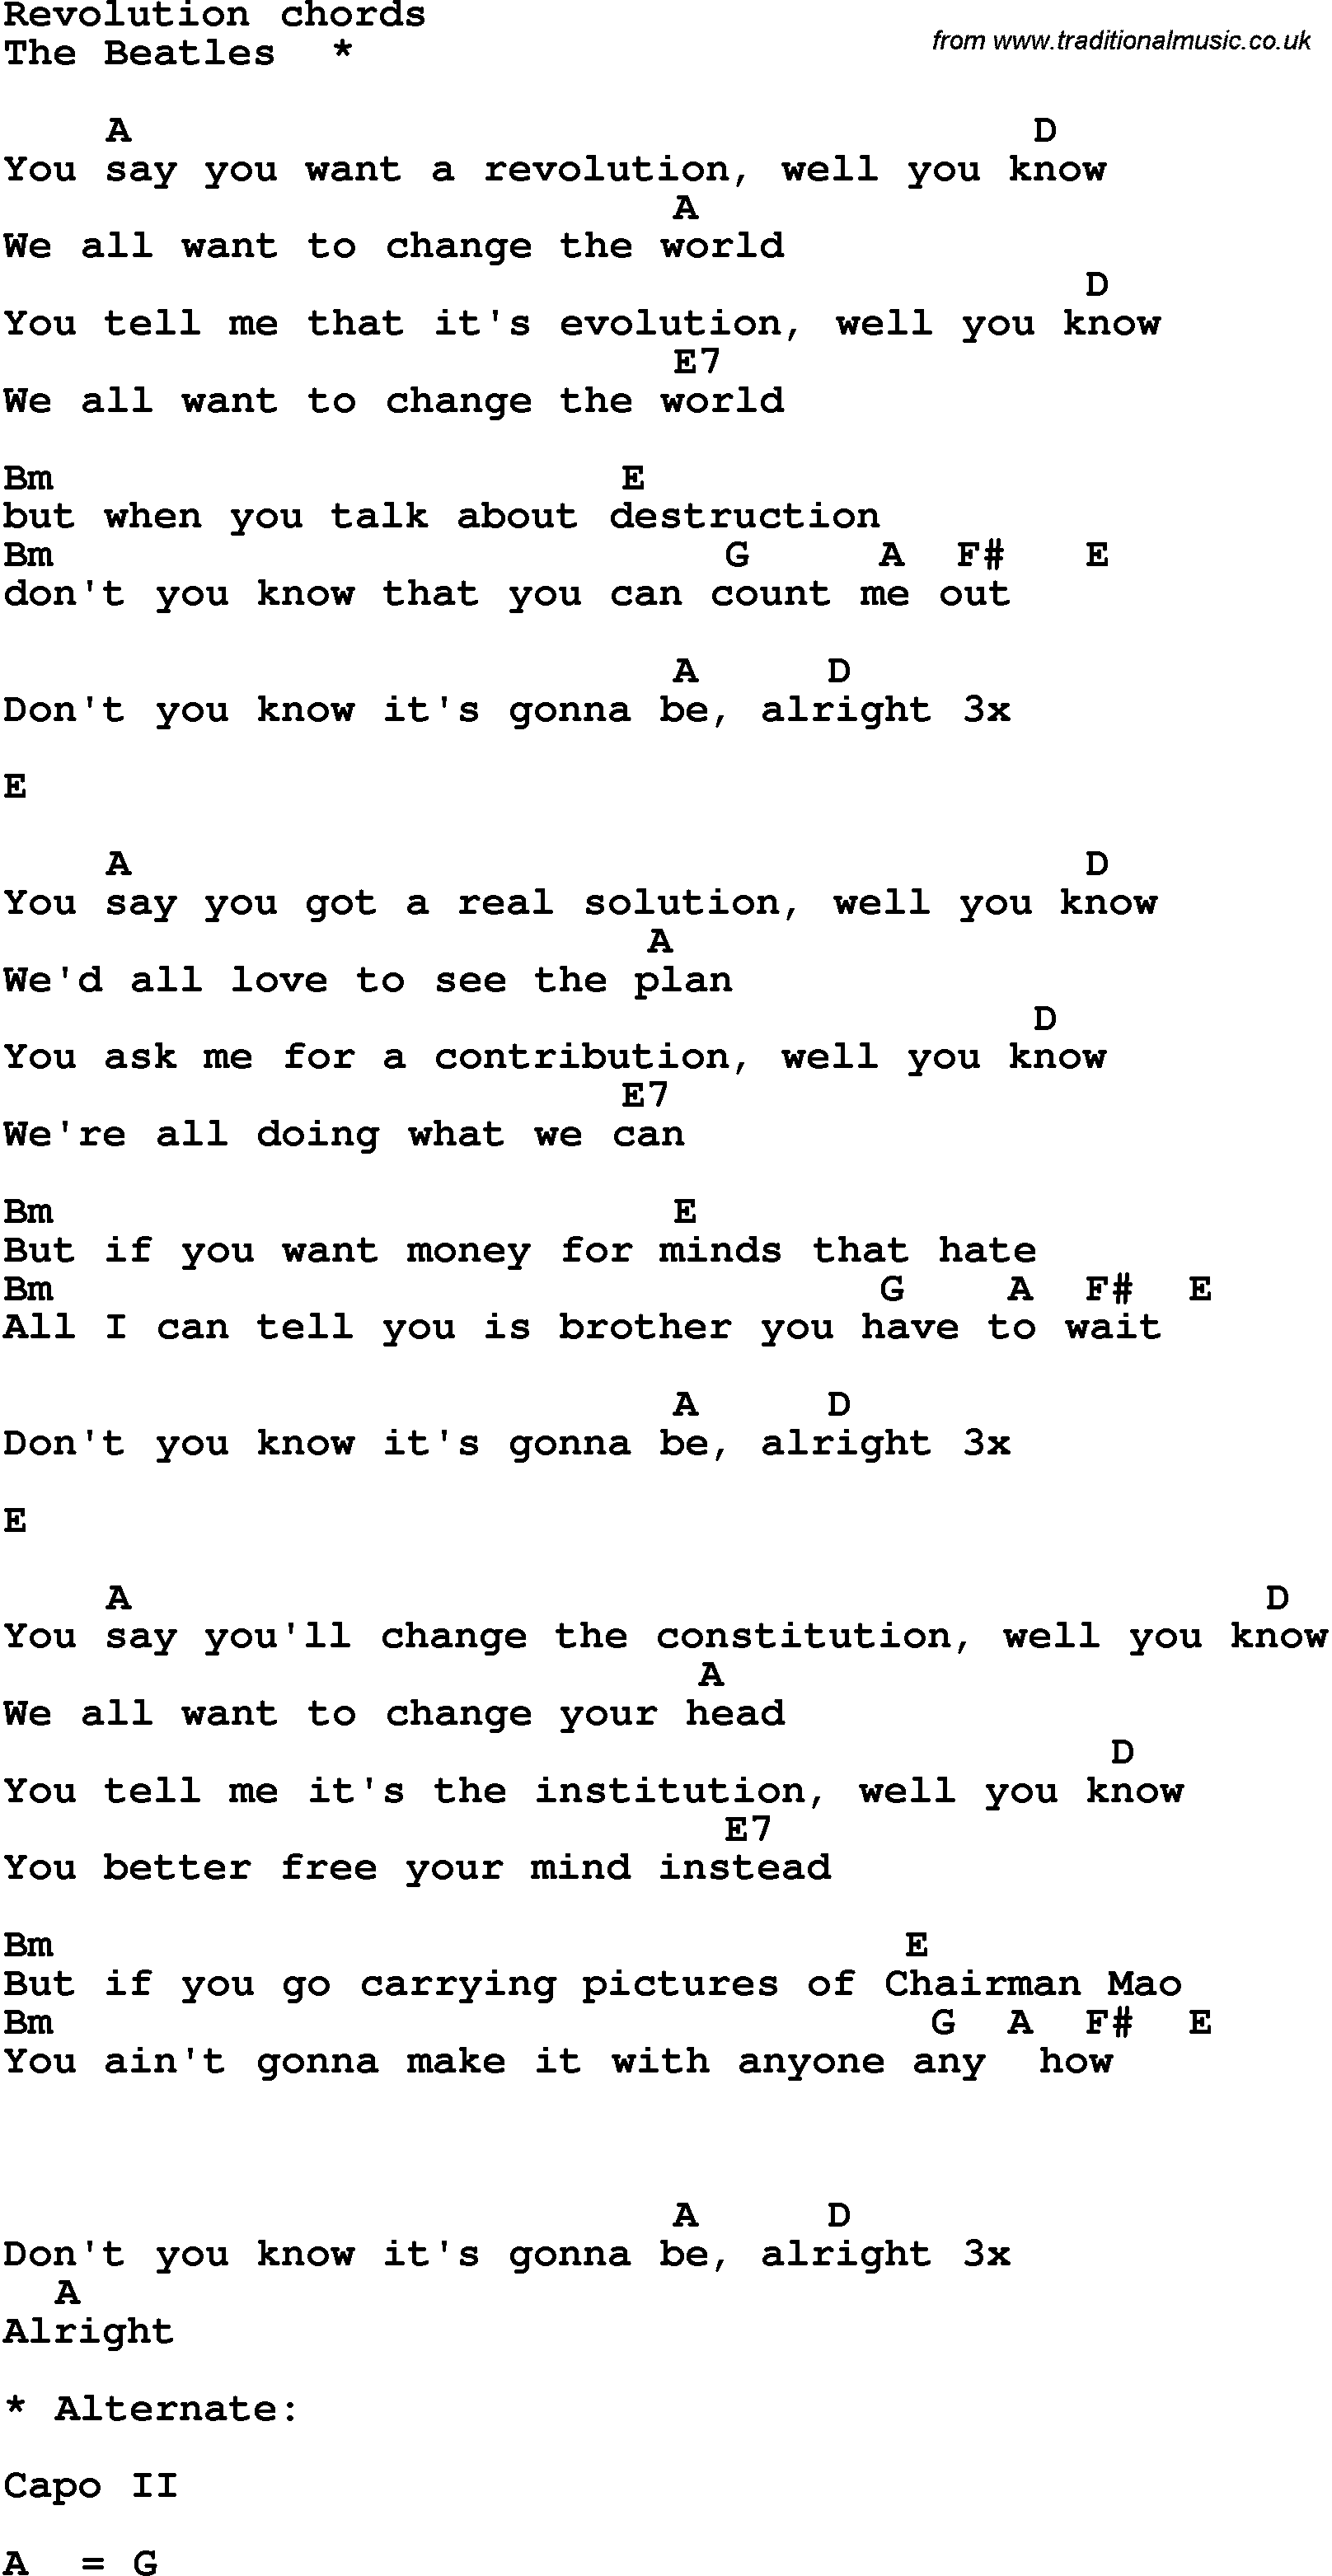 Song lyrics with guitar chords for revolution the beatles song lyrics with guitar chords for revolution the beatles hexwebz Images